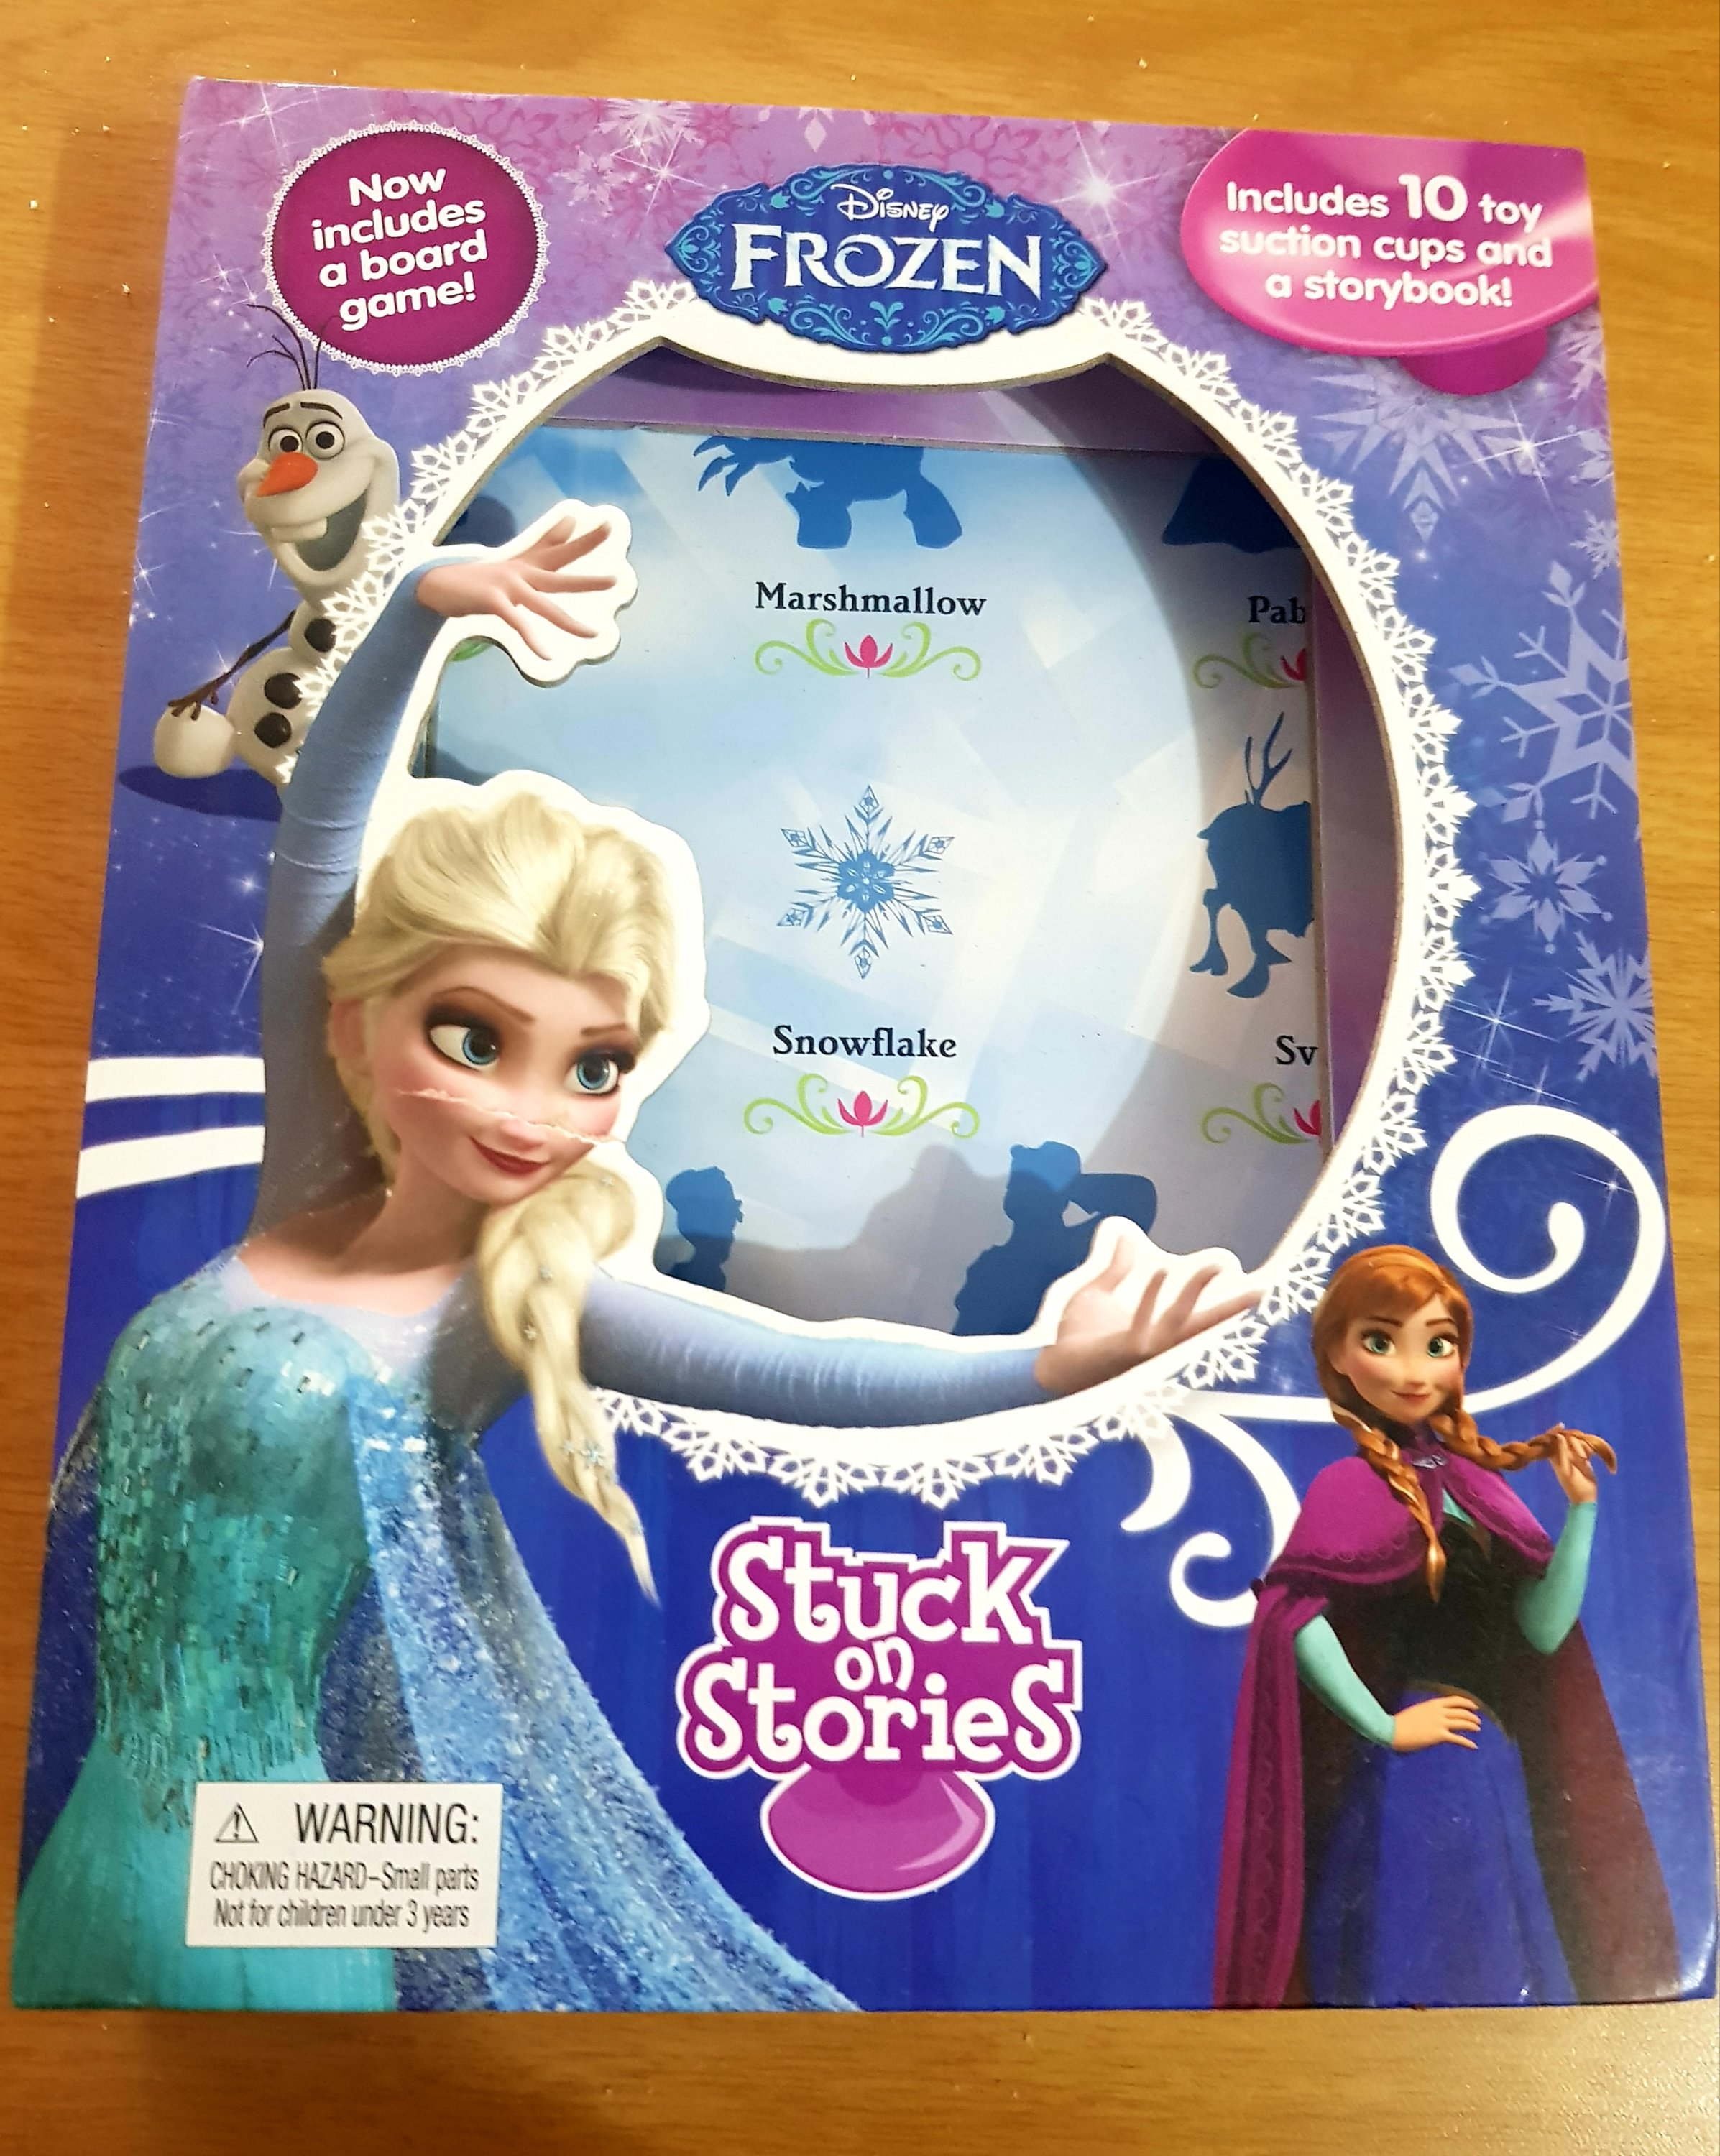 Dusney Frozen book